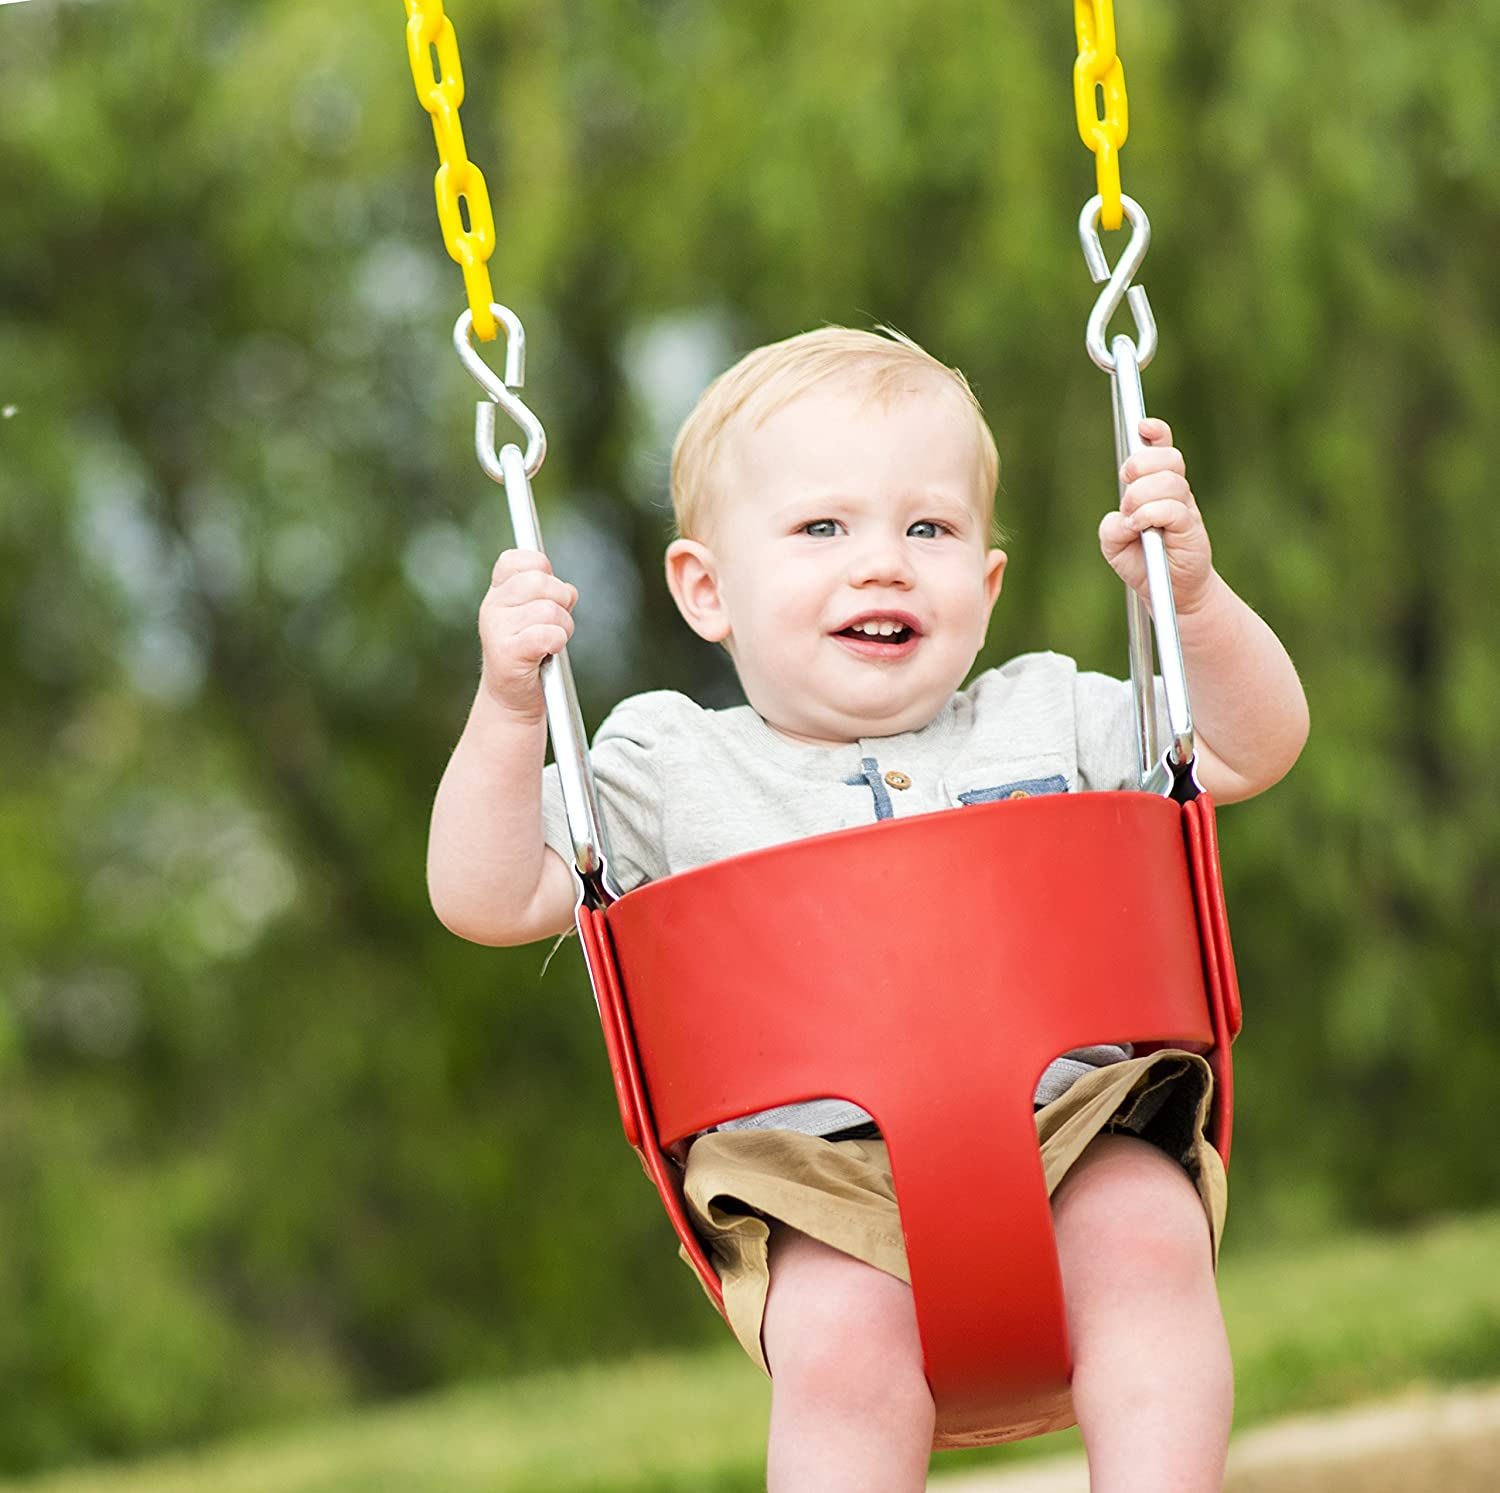 Swing Set Squirrel Products High Back Full Bucket Toddler Swing Seat with Plastic Coated Chains